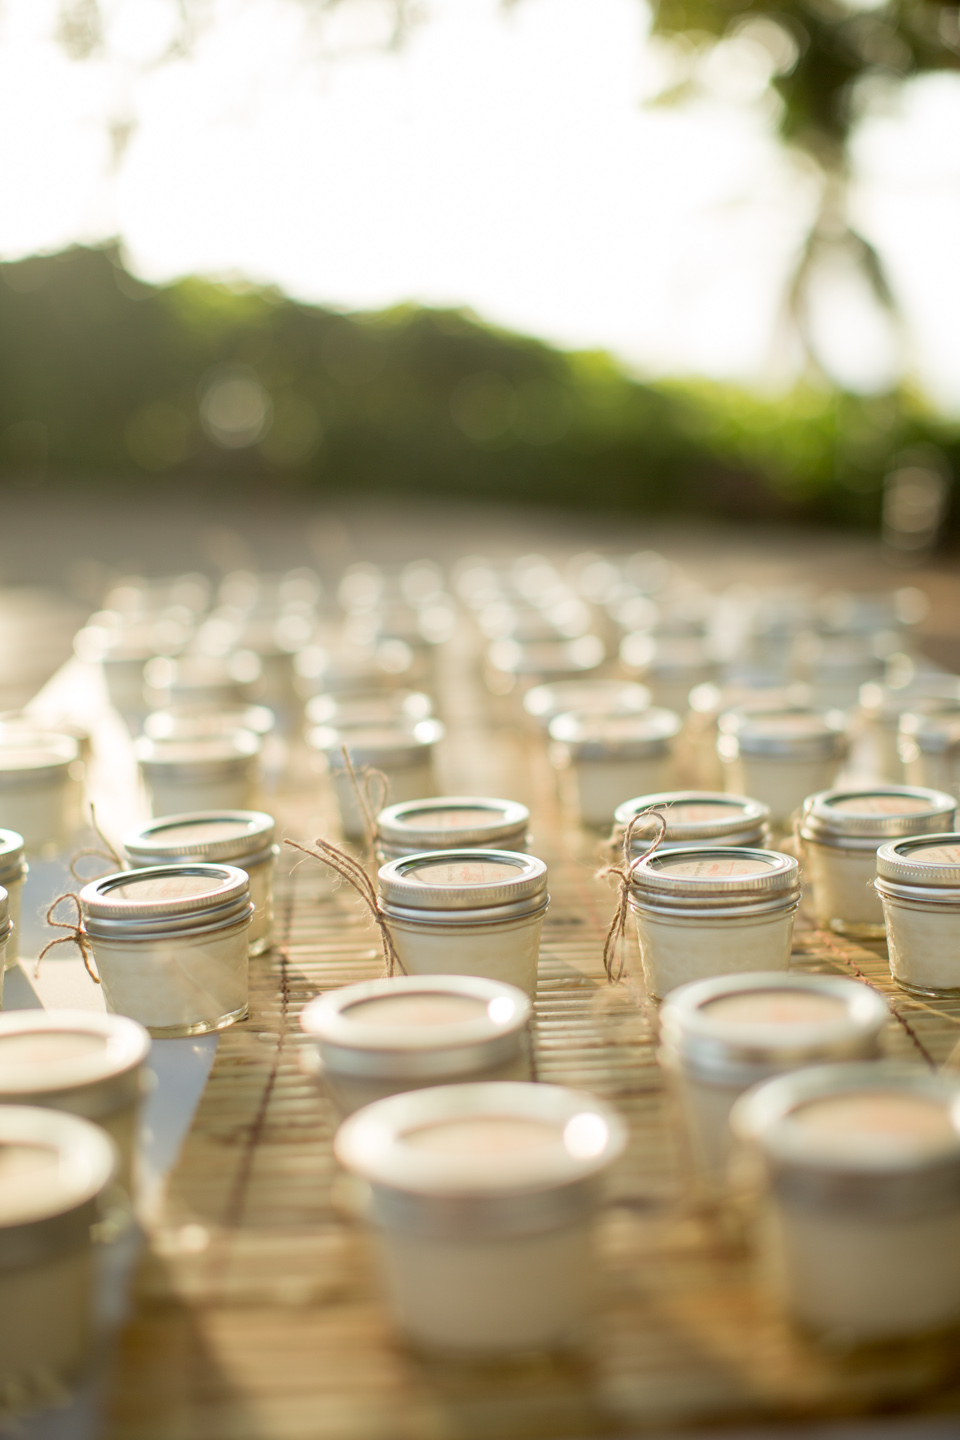 062_maui-wedding-photographer-kaua-photography